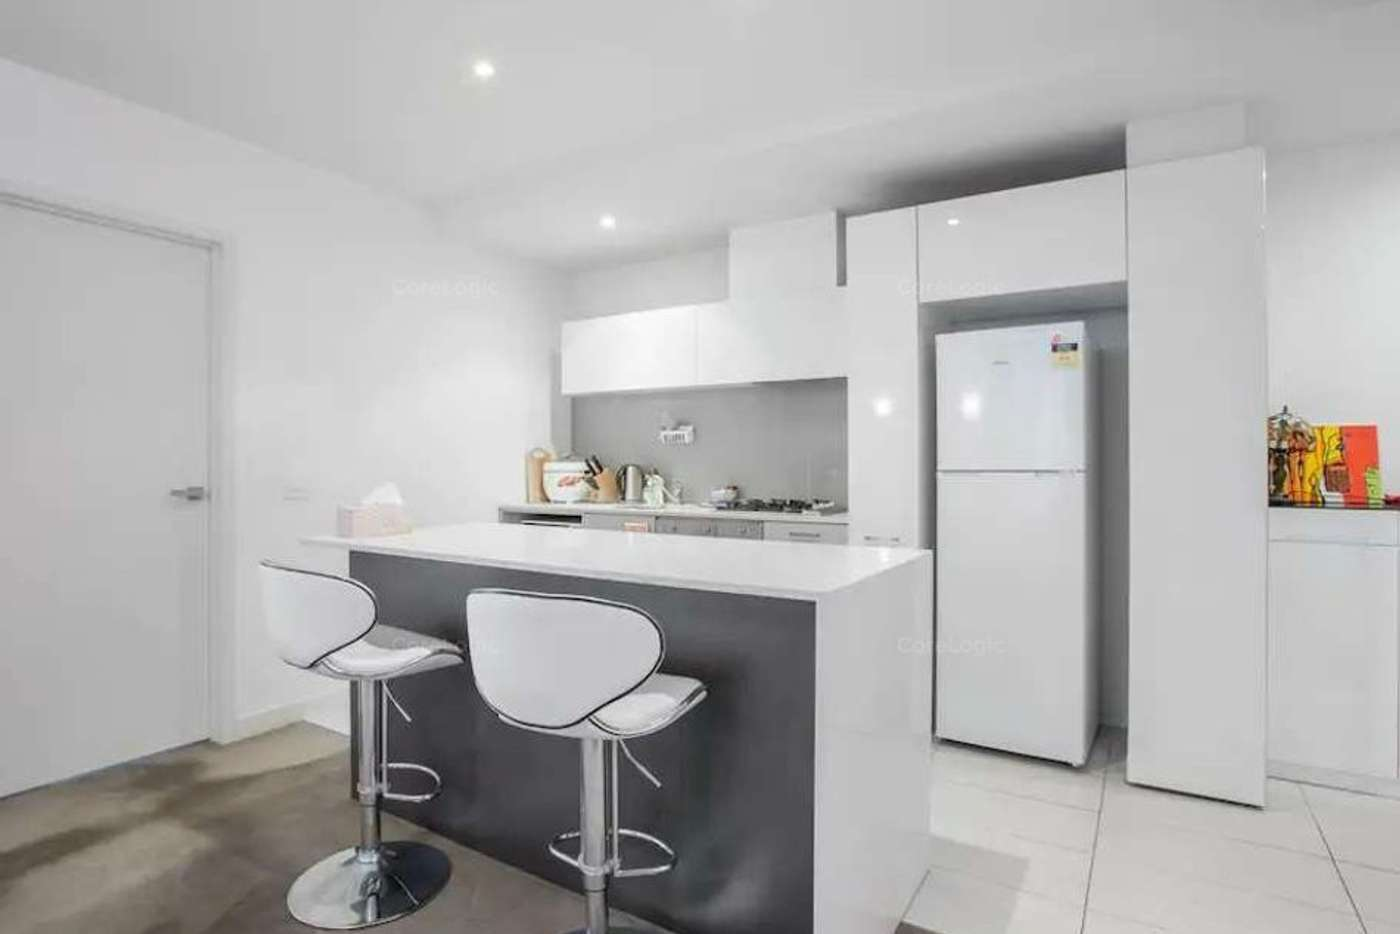 Seventh view of Homely apartment listing, 3701/200 Spencer Street, Melbourne VIC 3000